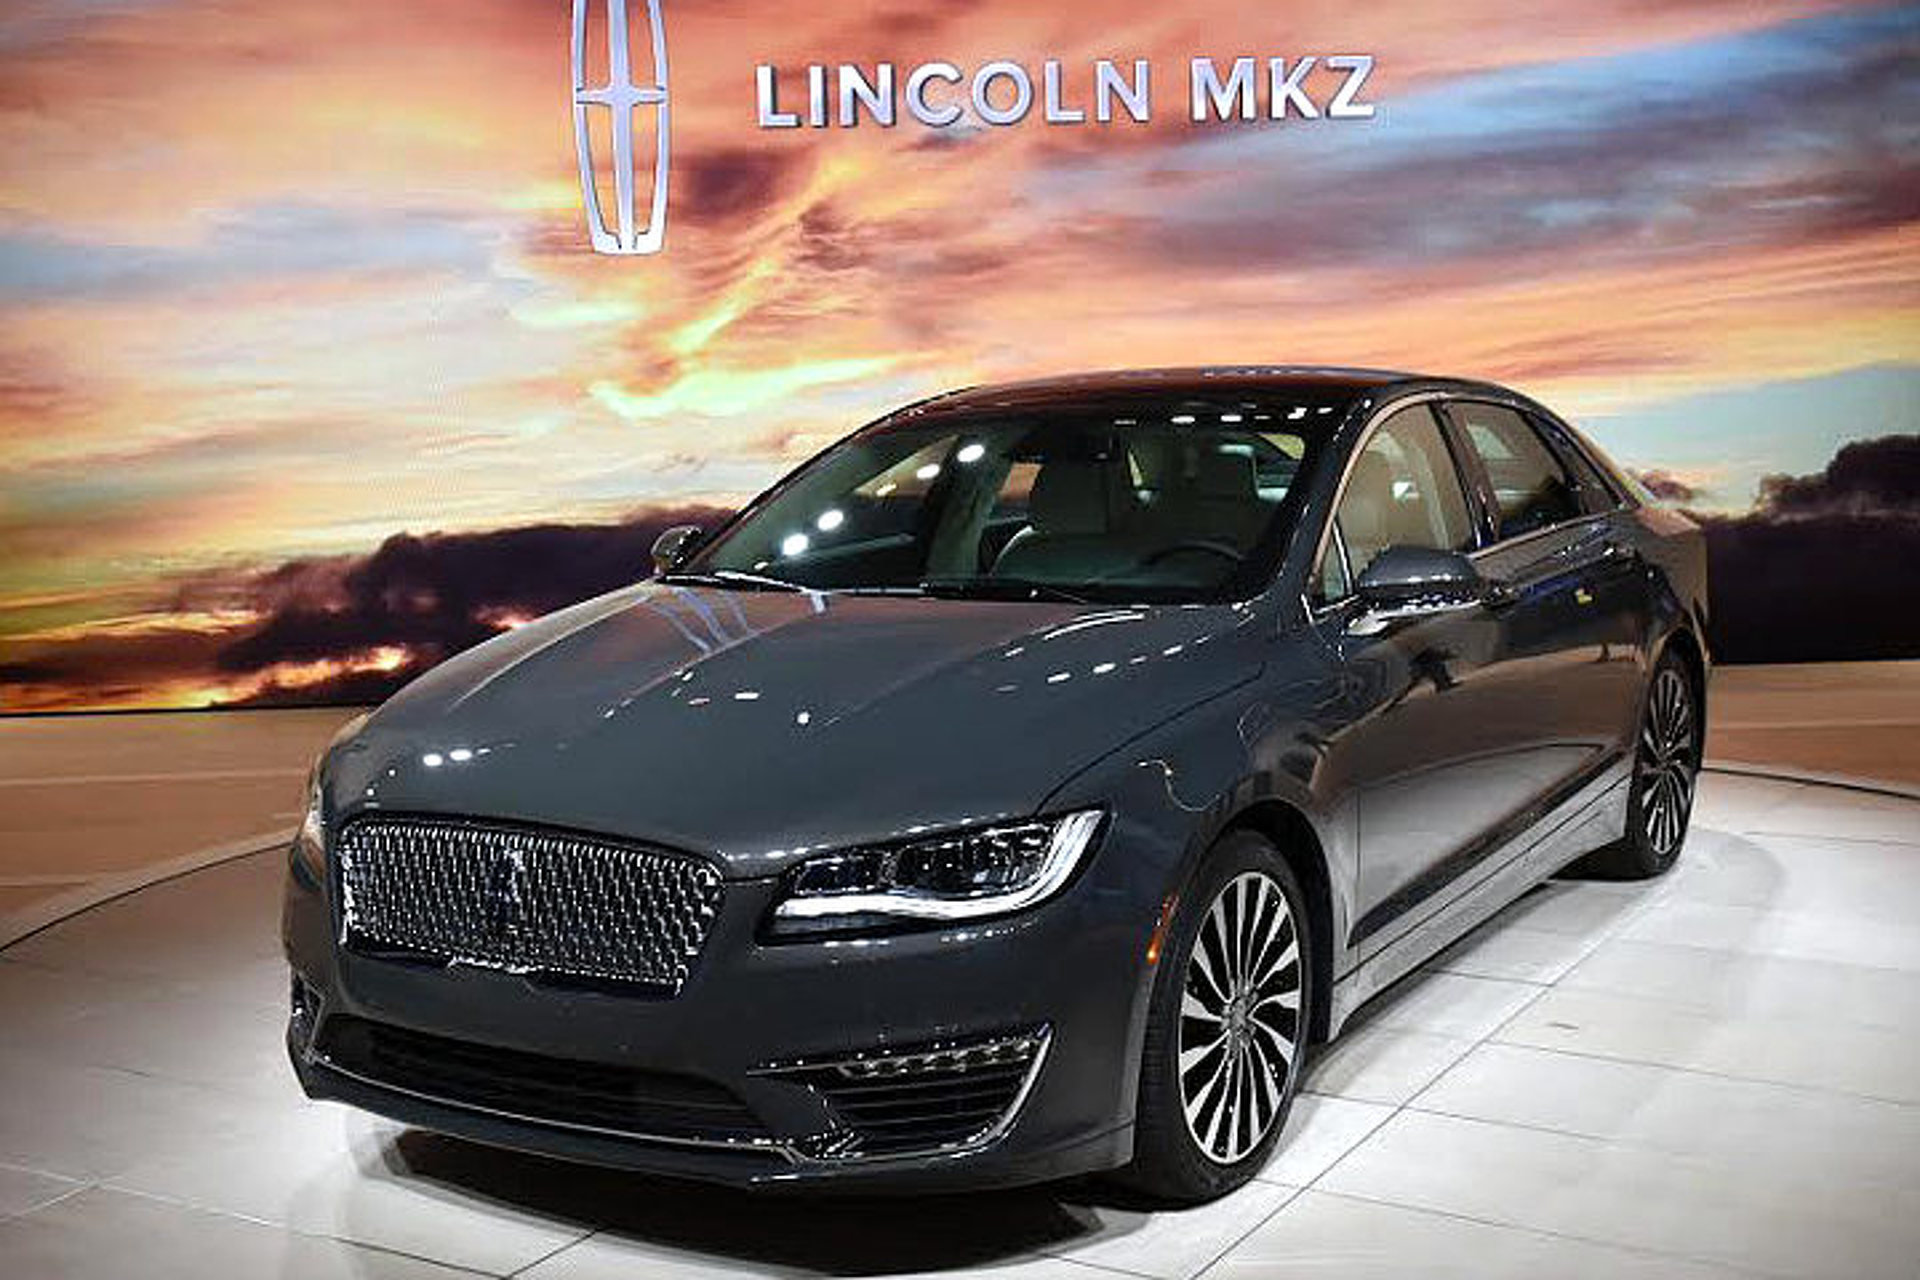 2017 Lincoln Mkz Shows Off New Look 400hp Turbo V6